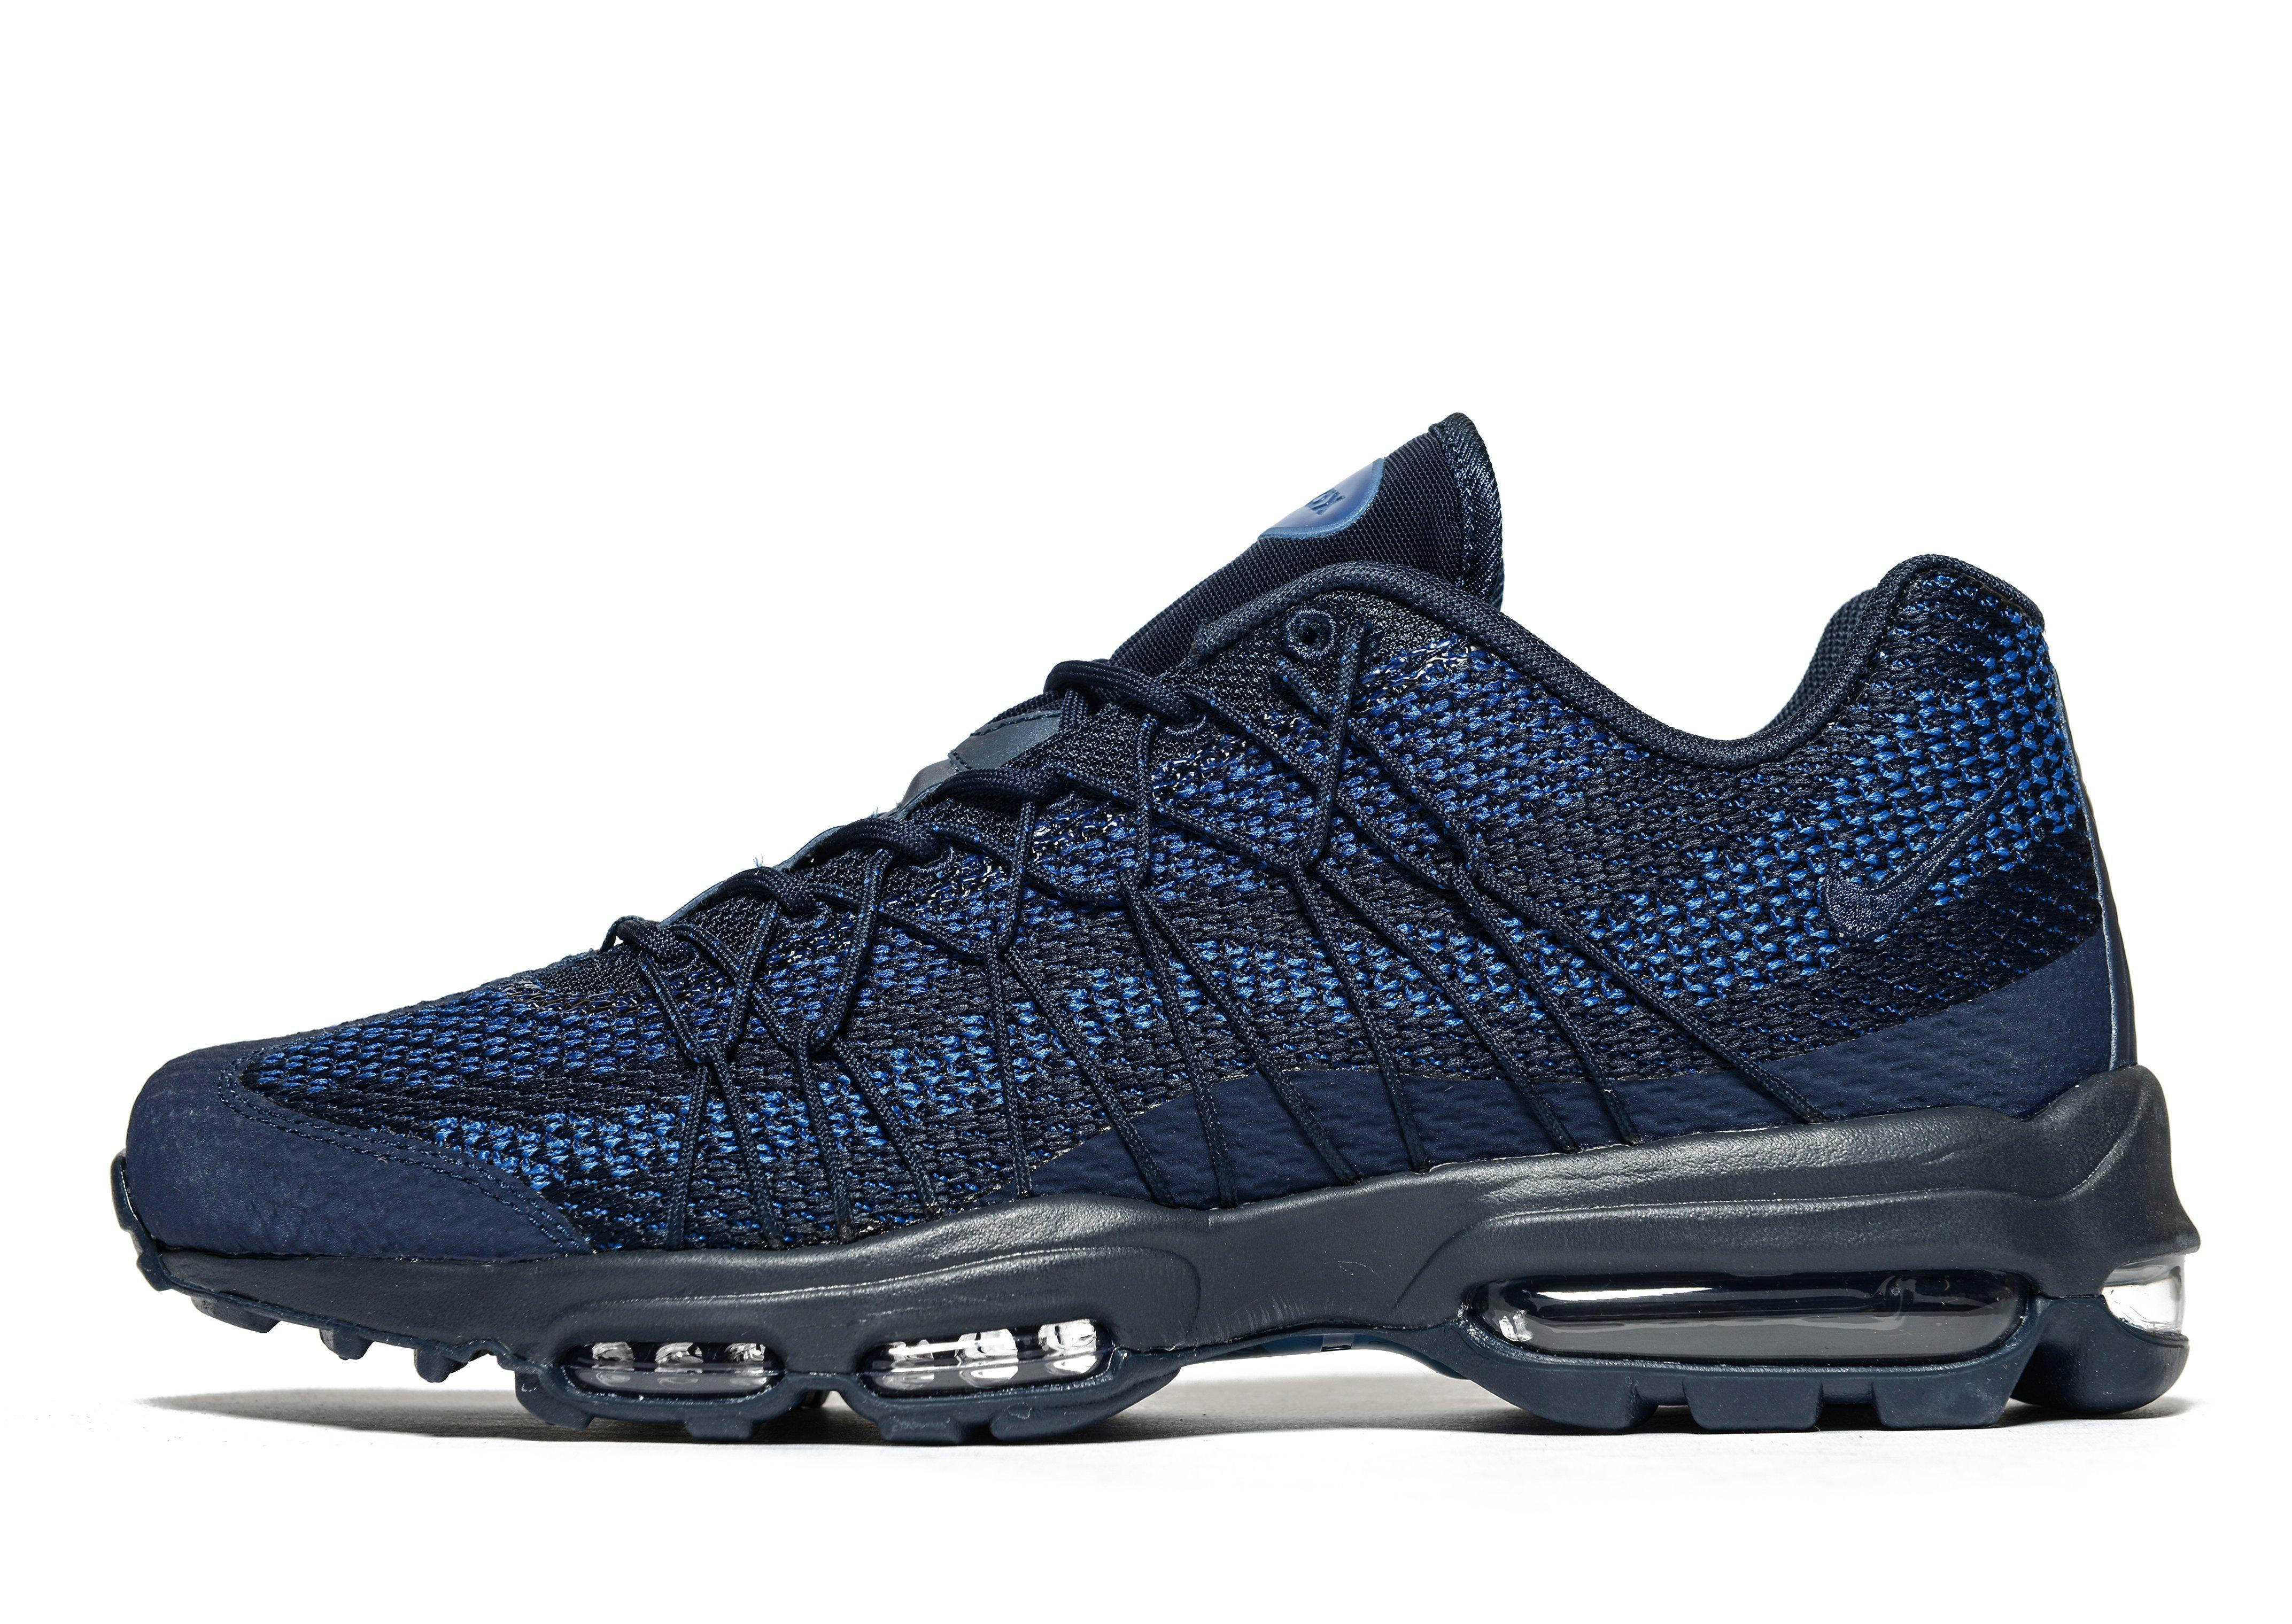 reputable site 0c888 ed0a5 Nike Air Max 95 Ultra Jacquard in Blue for Men - Lyst